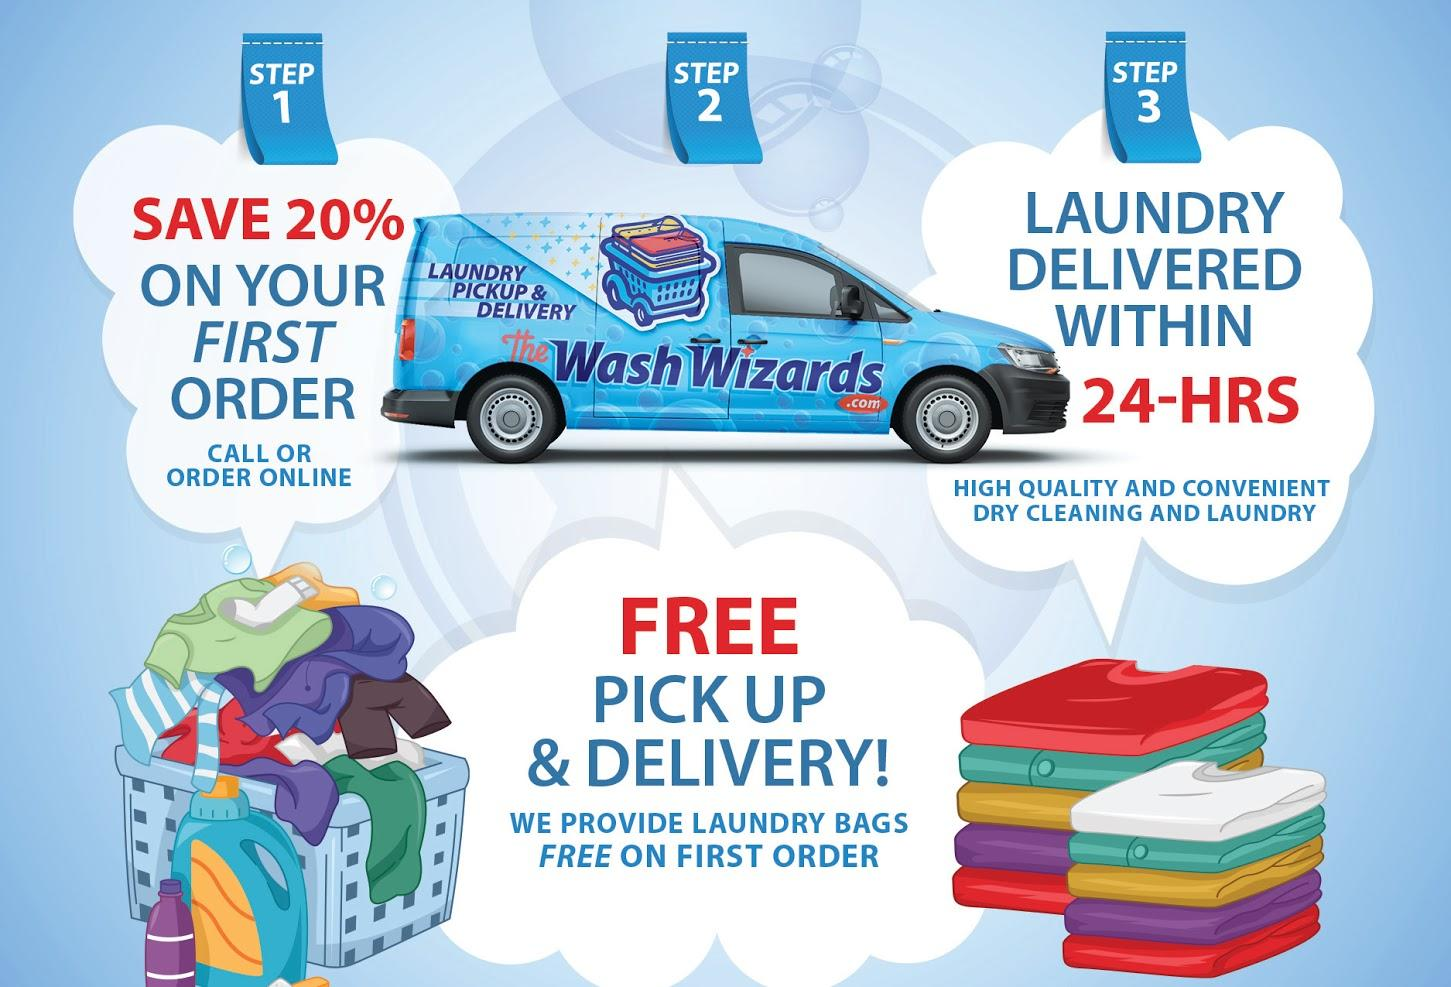 Wash Wizards Laundry Pickup & Delivery Service - Oxnard image 14